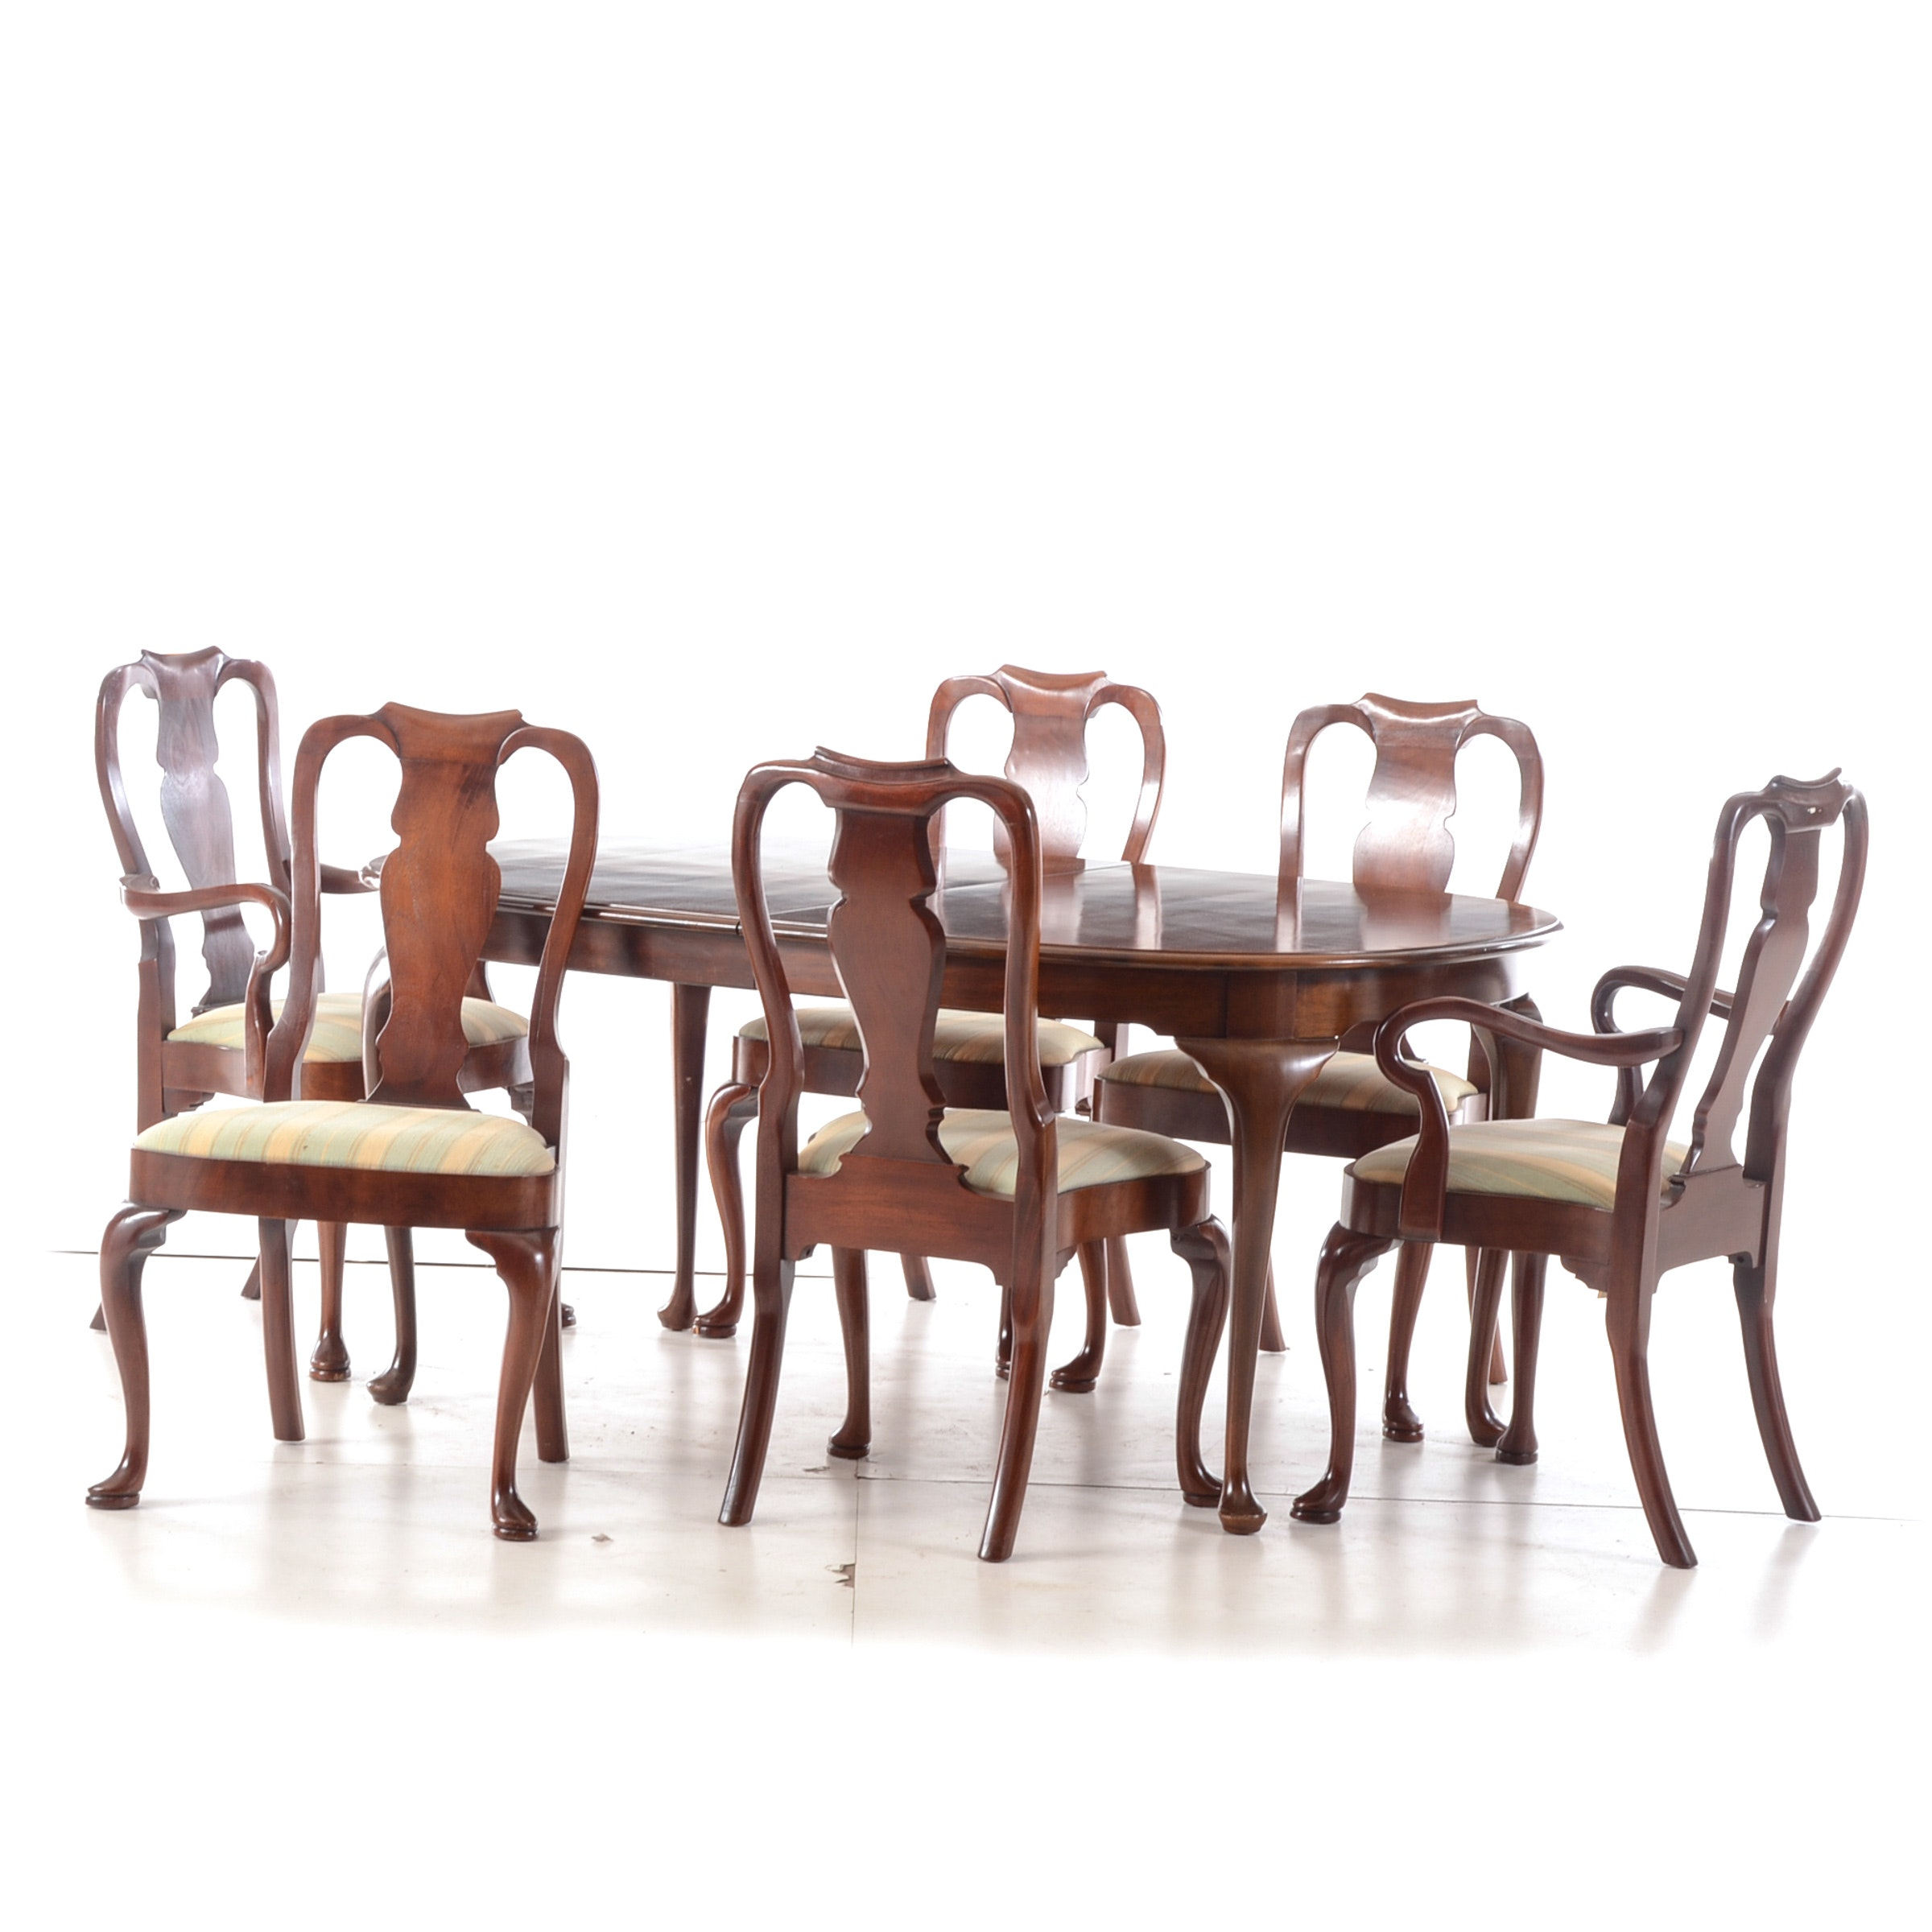 Queen Ann Style Dining Table with Chairs